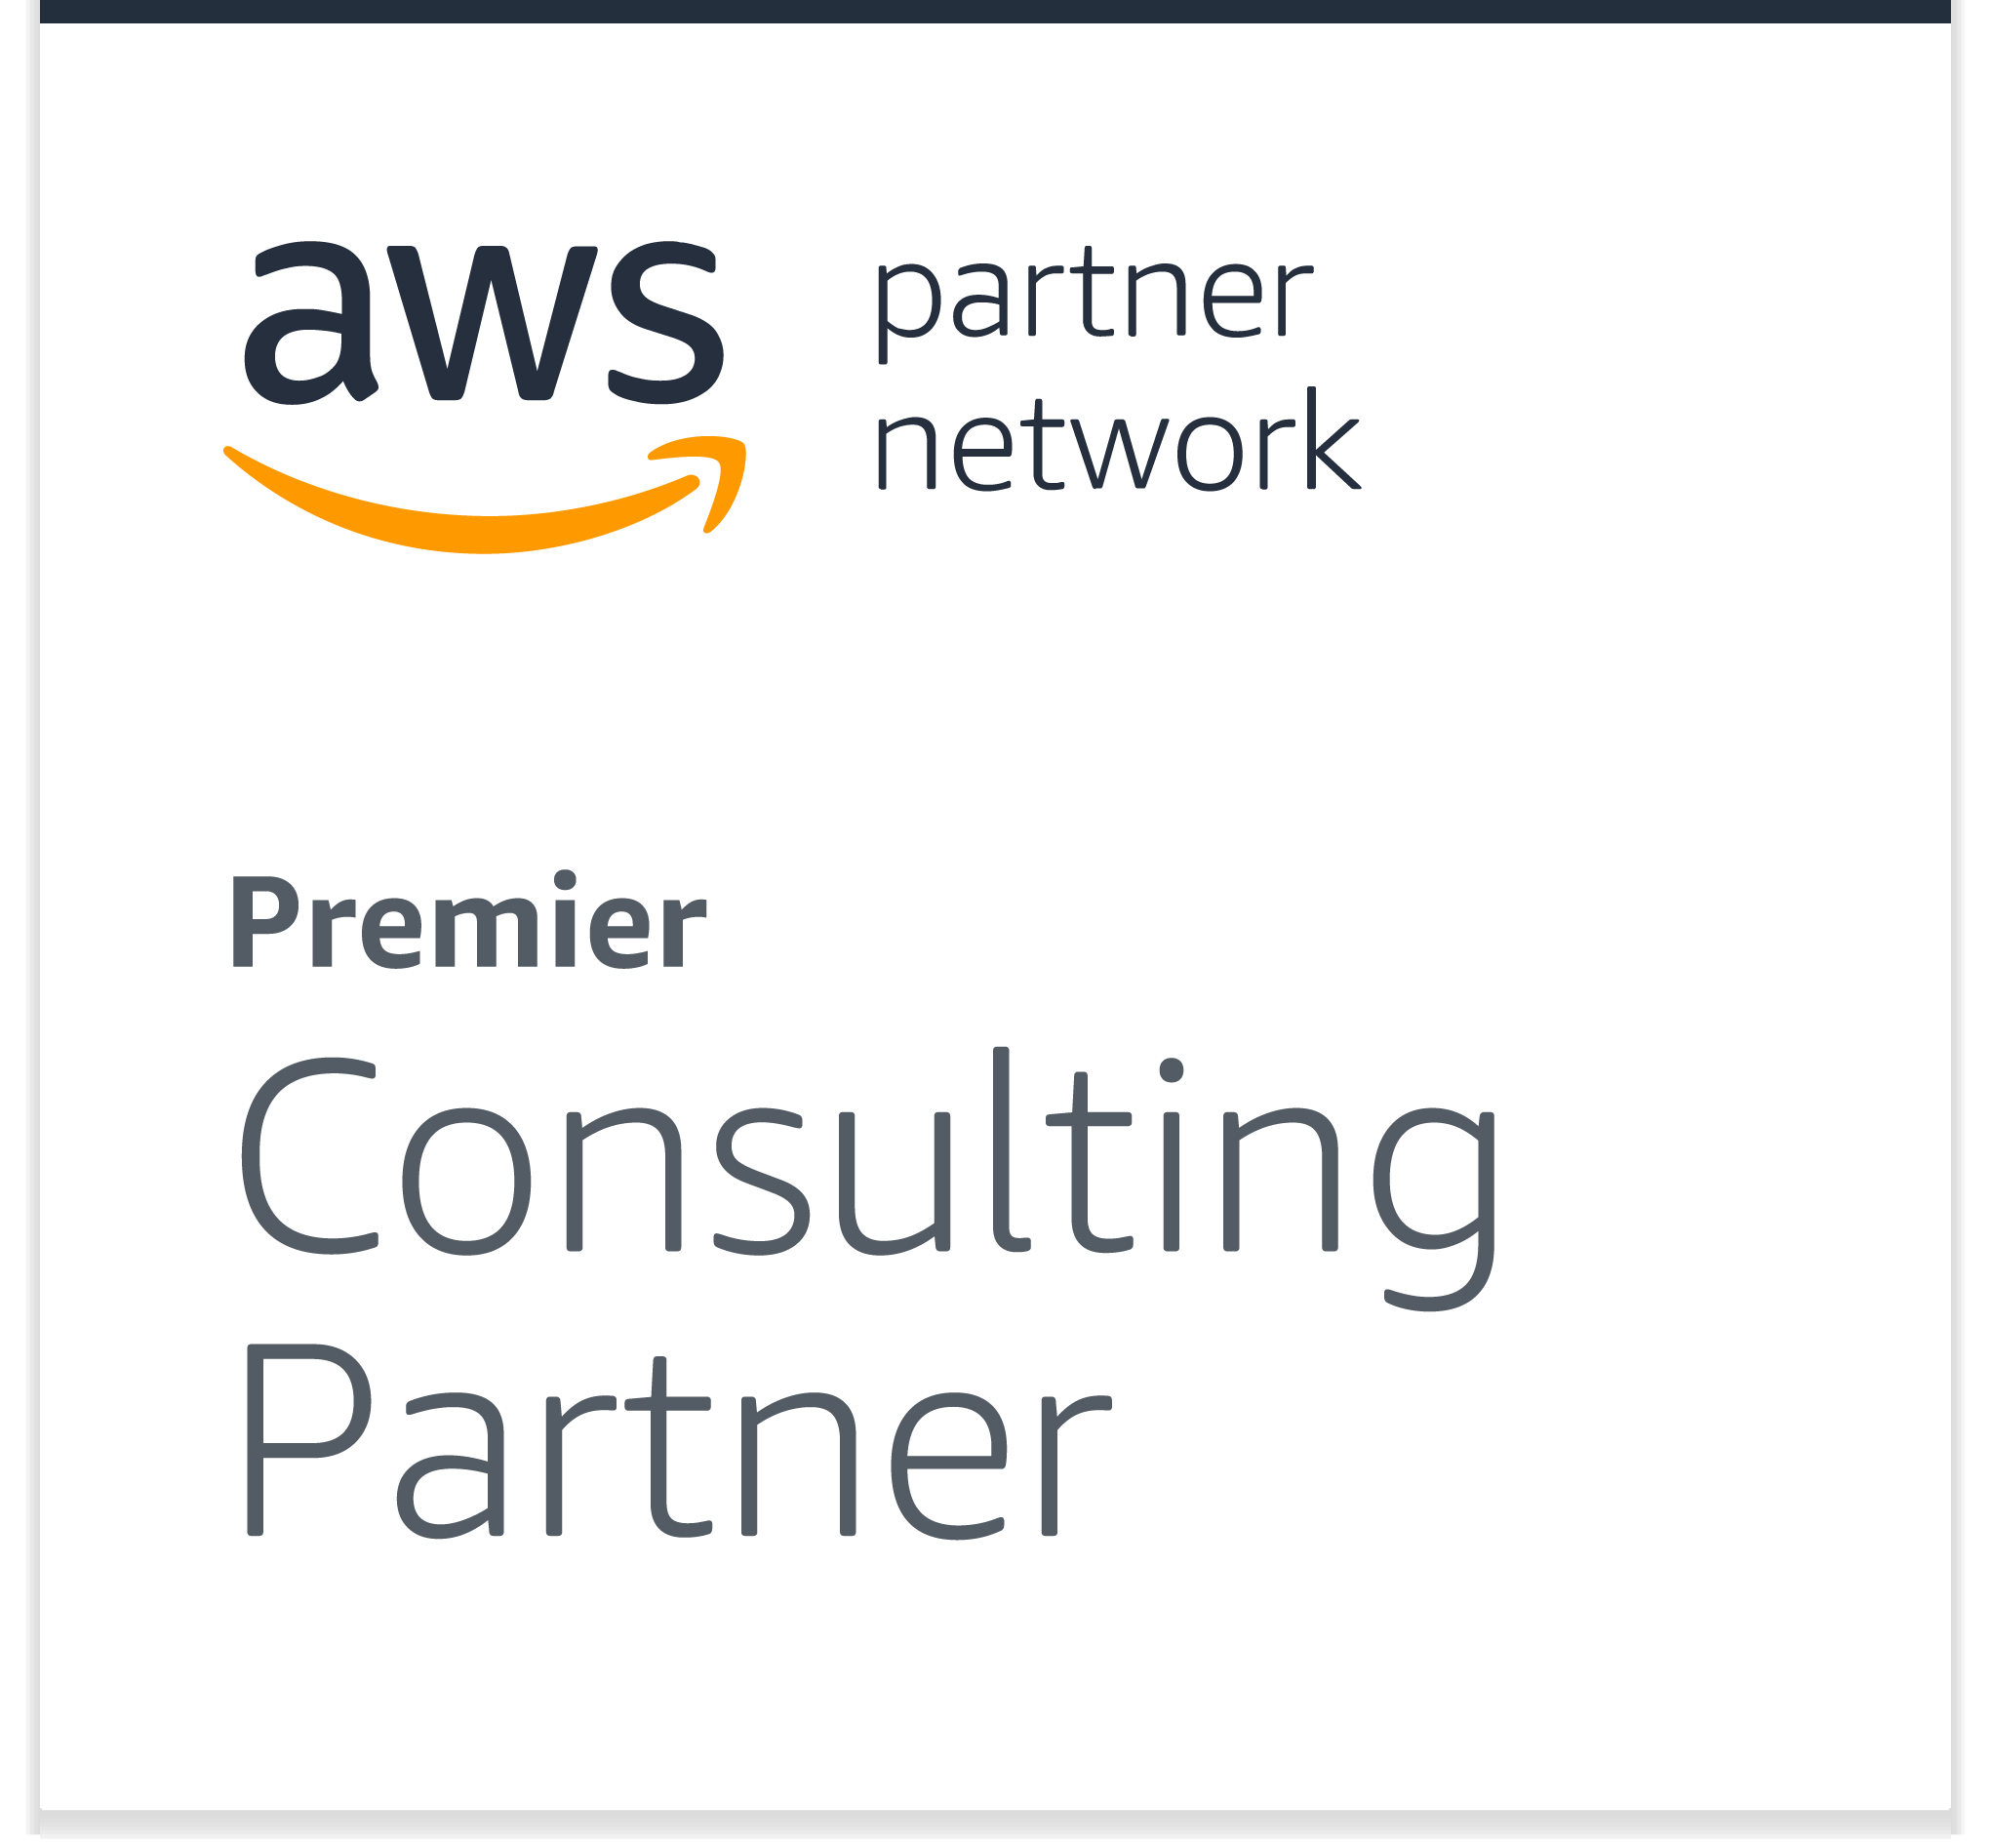 Amazon Web Services Partner Network: Premier Consulting Partner